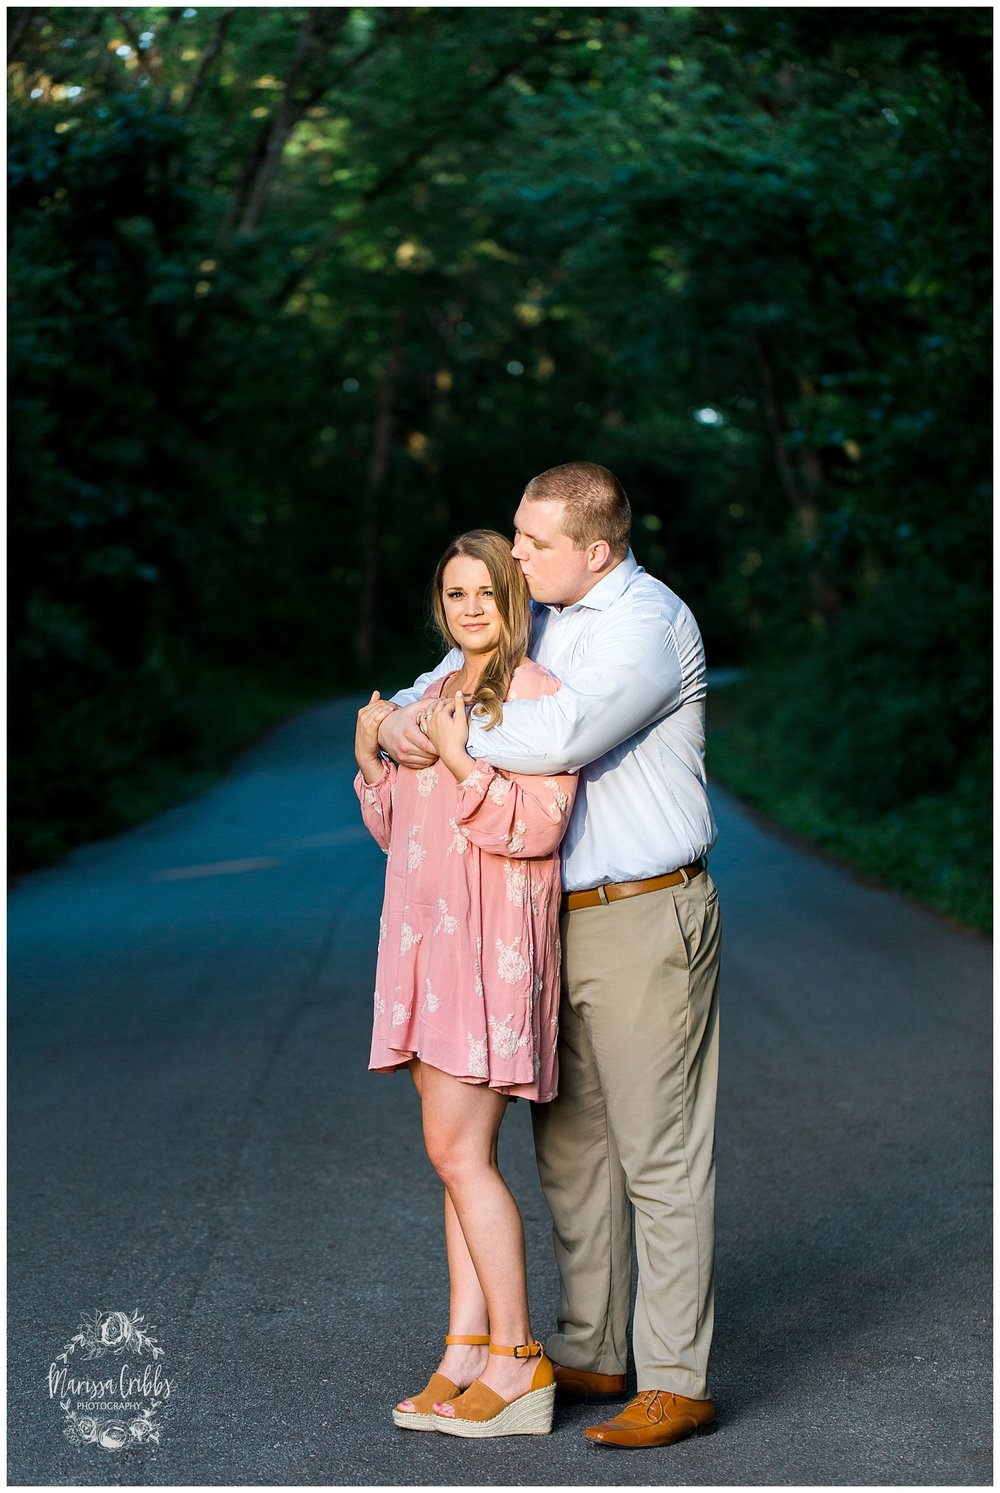 Morgan & Ryan Engaged | Lake Quivira Engagement Photography | Marissa Cribbs Photography_1546.jpg